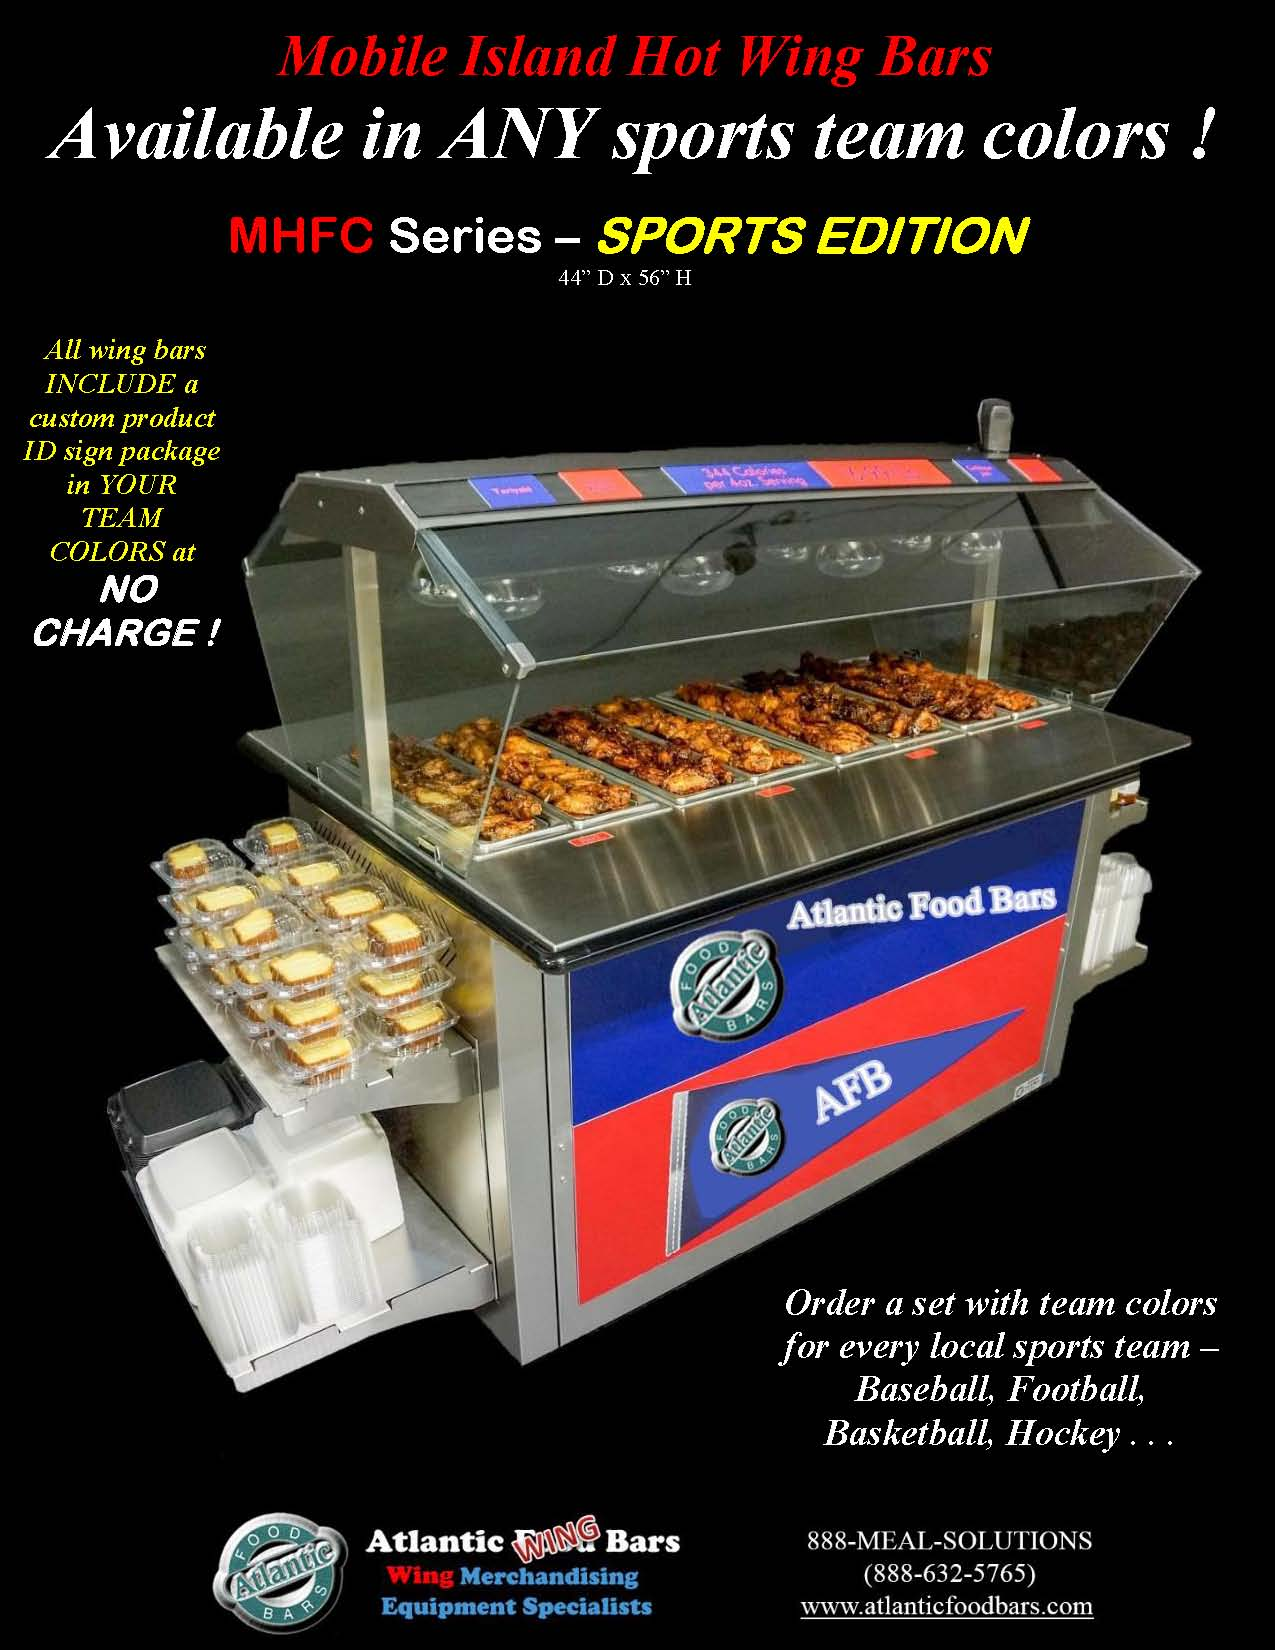 Atlantic Food Bars - Hot Wing Bar with Your Sports Team Colors - MHFC6044_Page_1